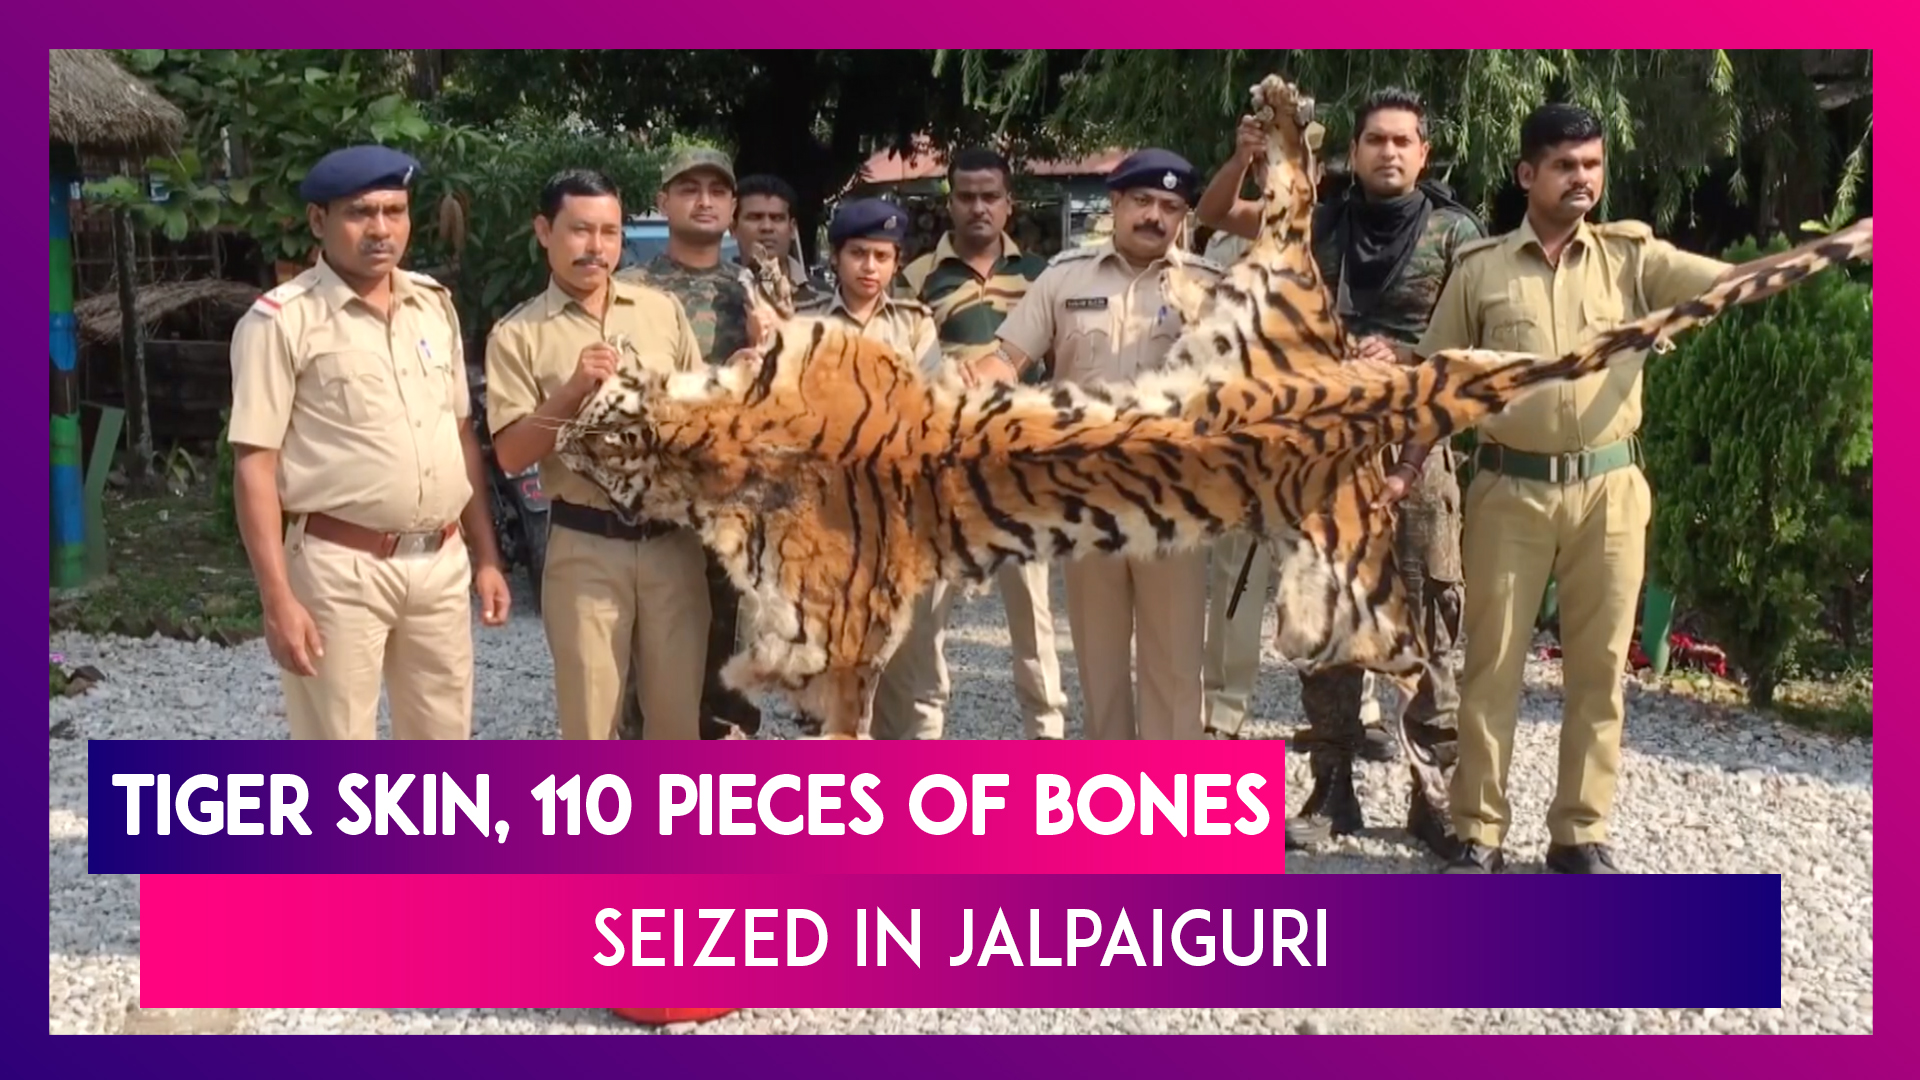 14-Feet-Long Royal Bengal Tiger Skin Seized In Jalpaiguri, Two Bhutanese Nationals Arrested